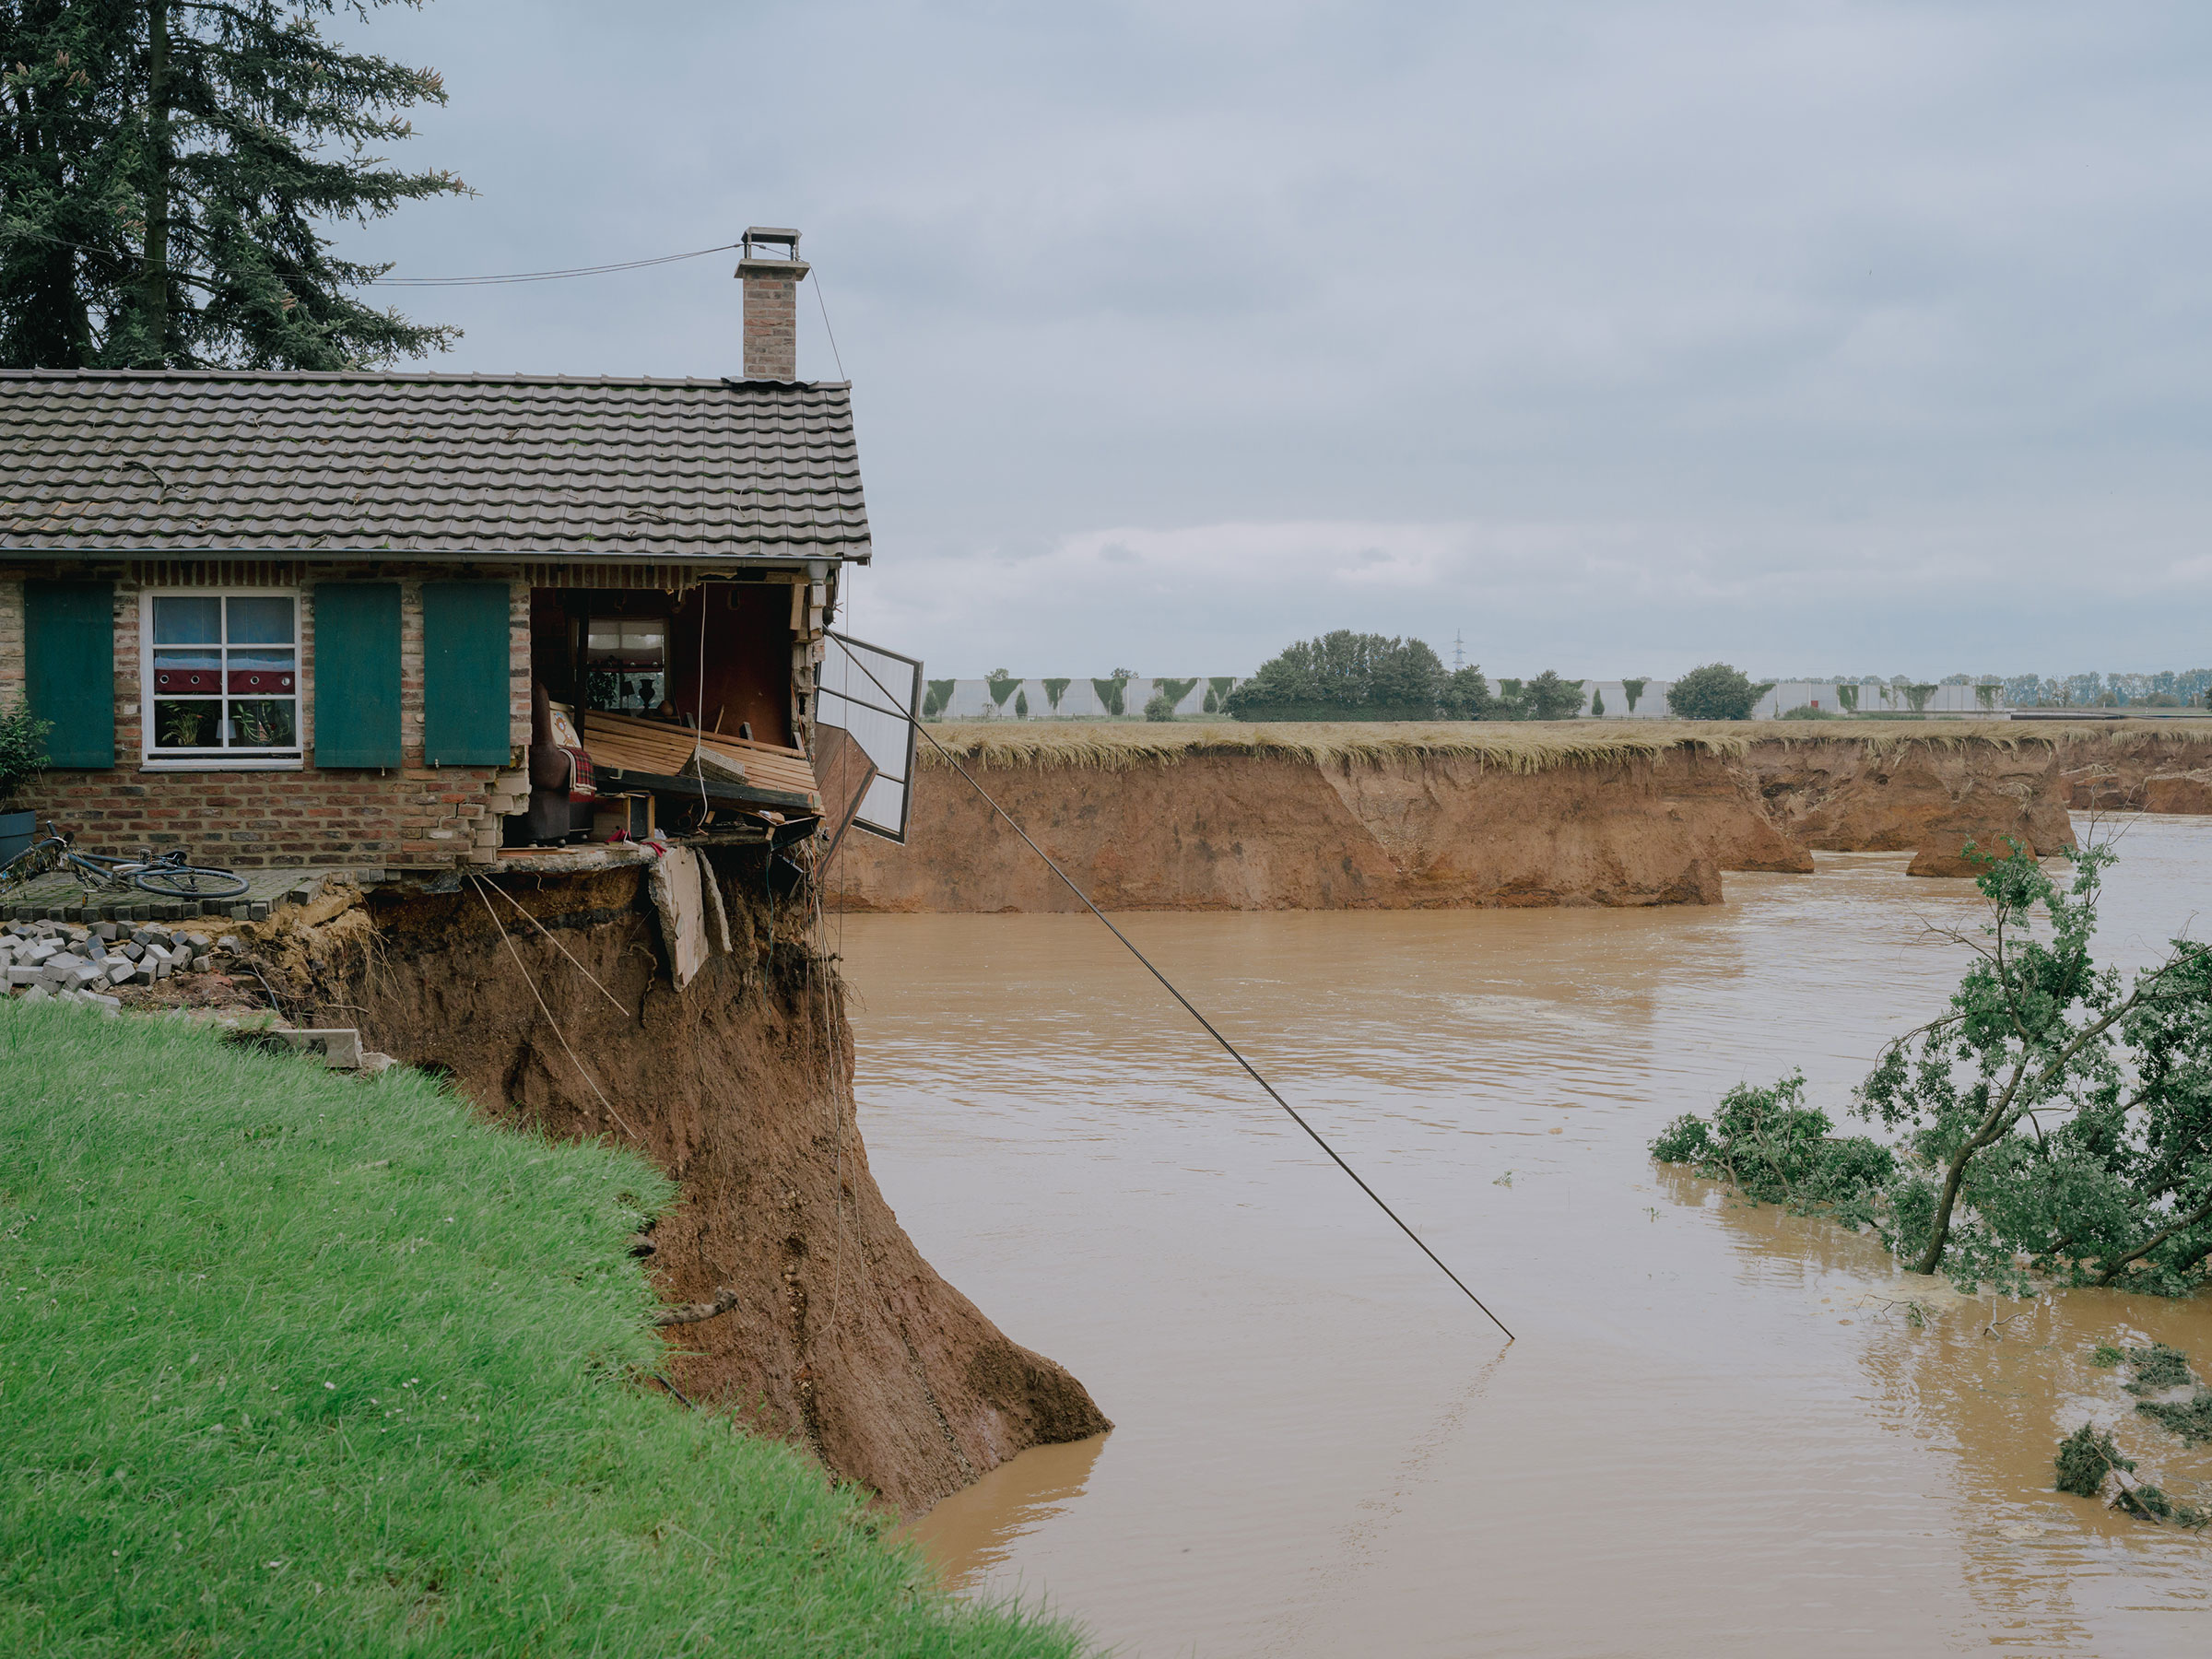 A house damaged by floods in Erfstadt Blessem, Germany, on July 16.